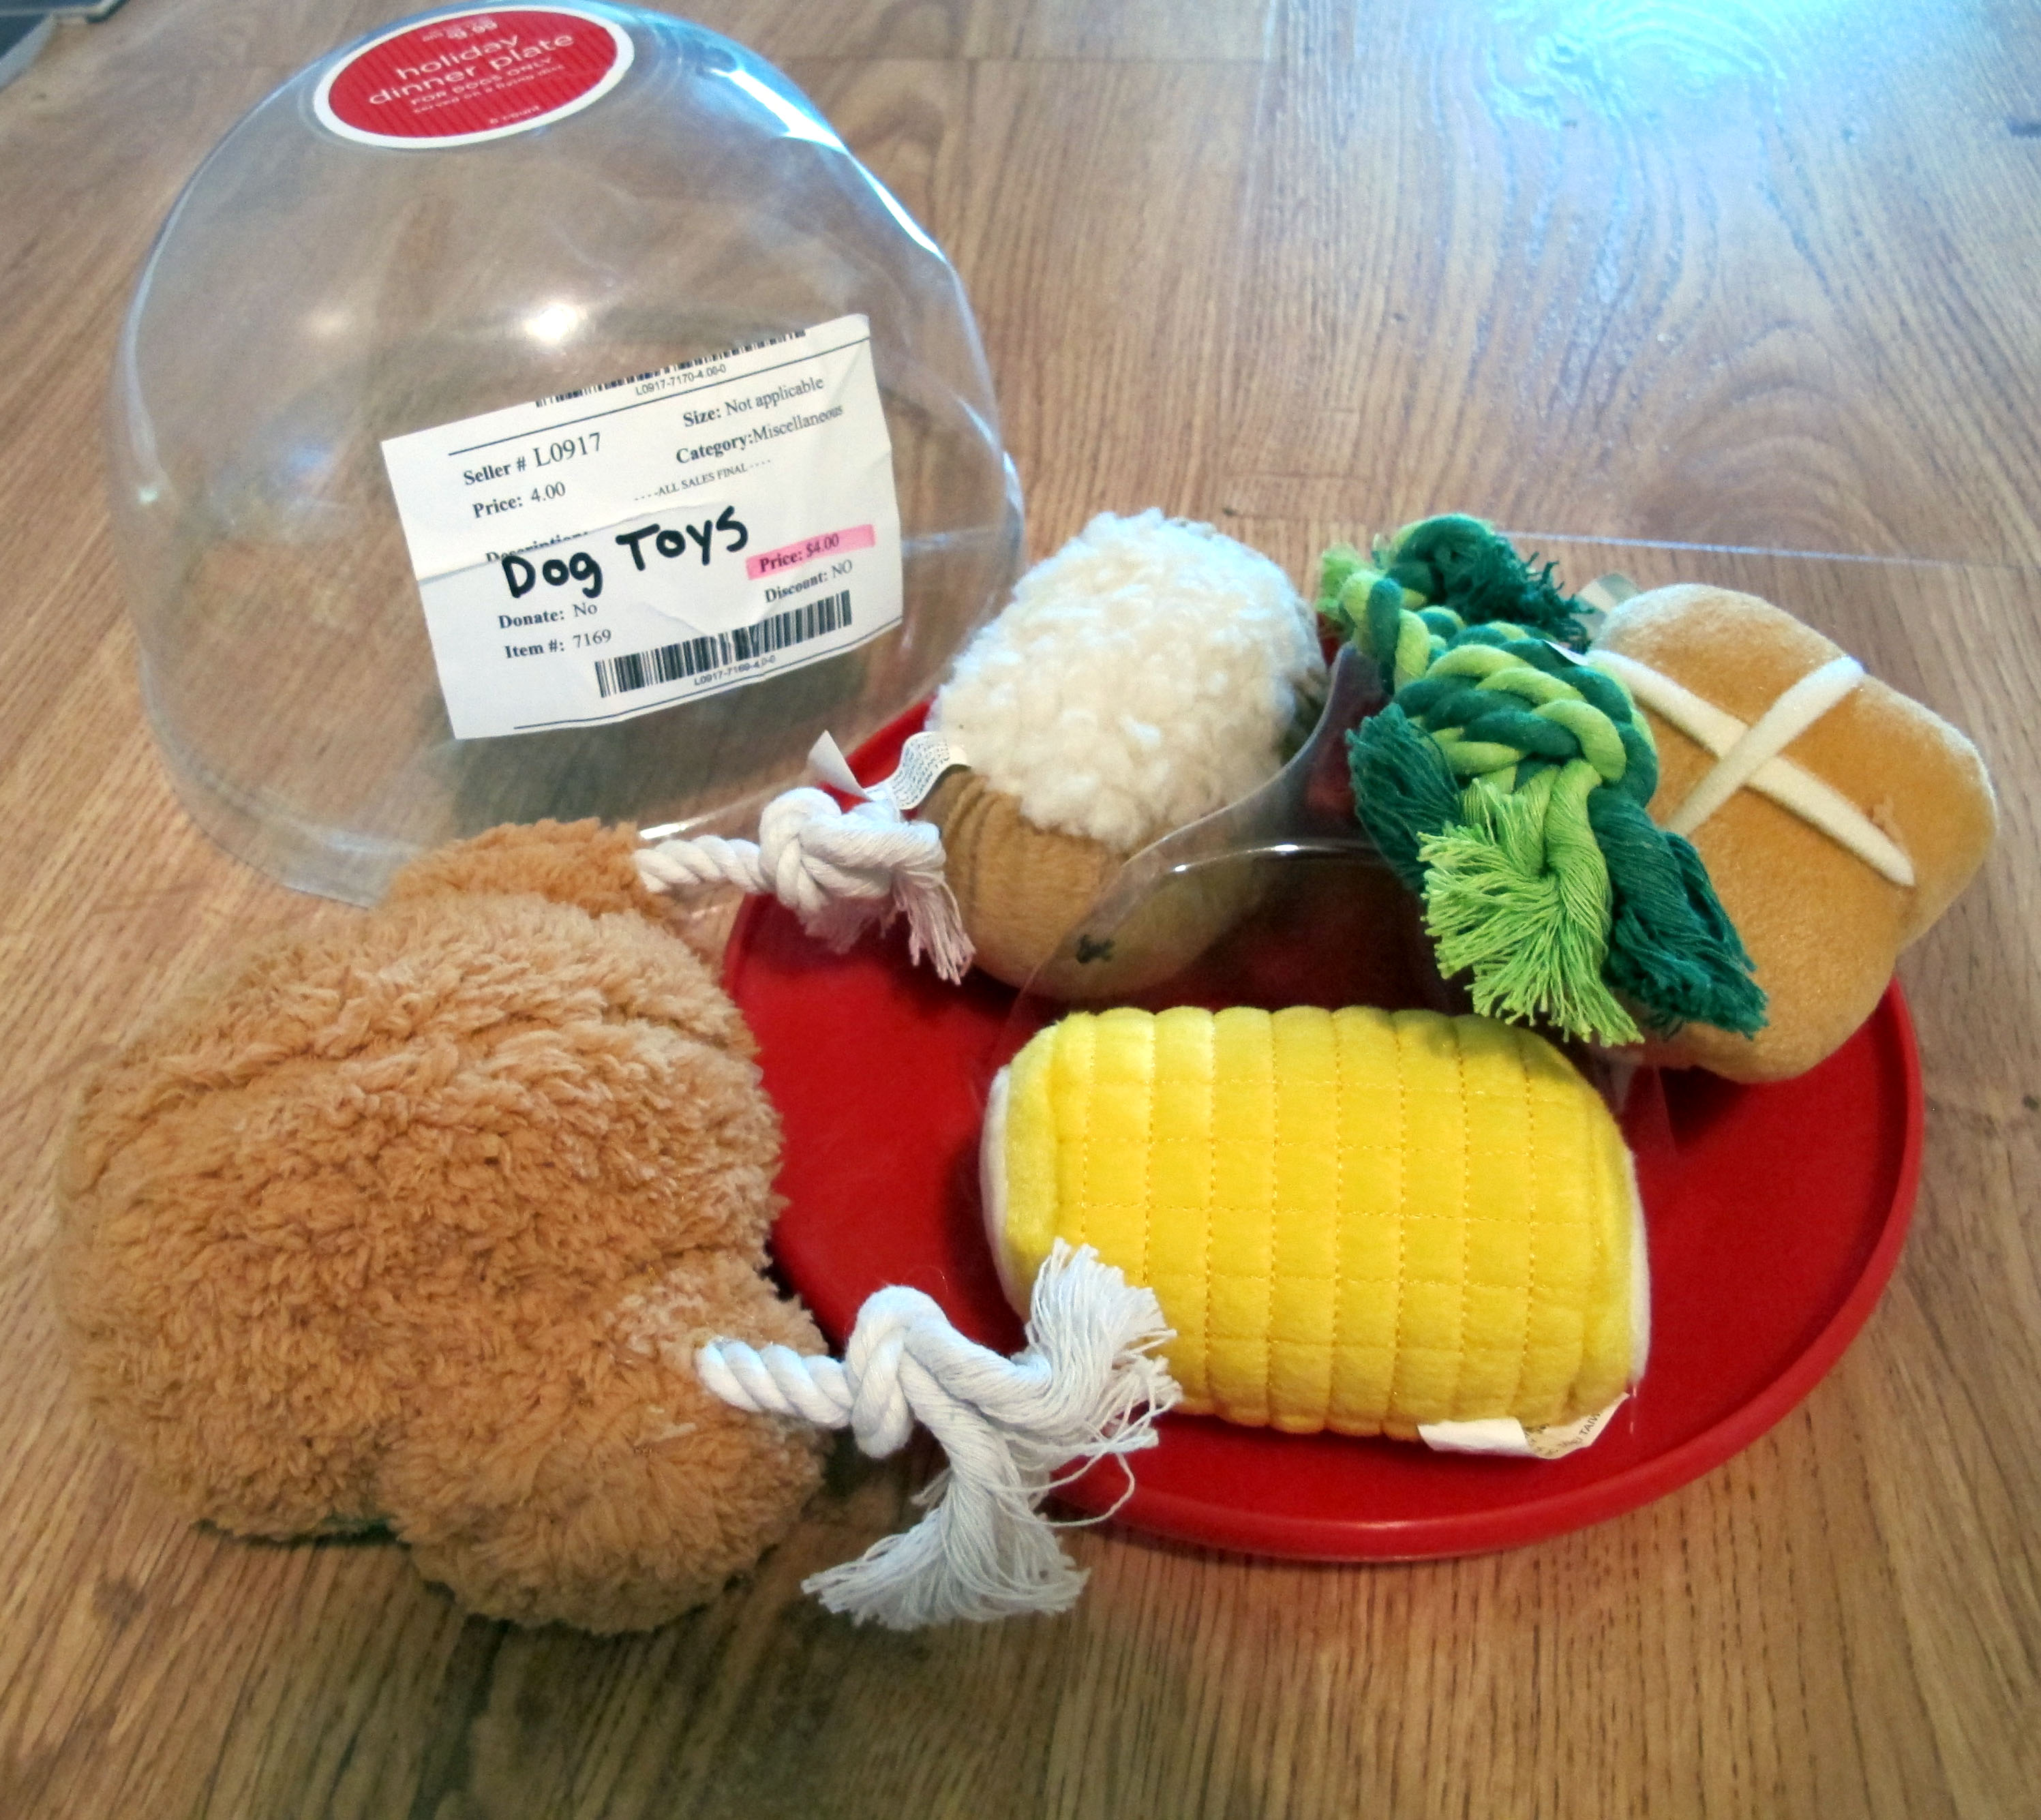 Turkey Dinner Dog Toy